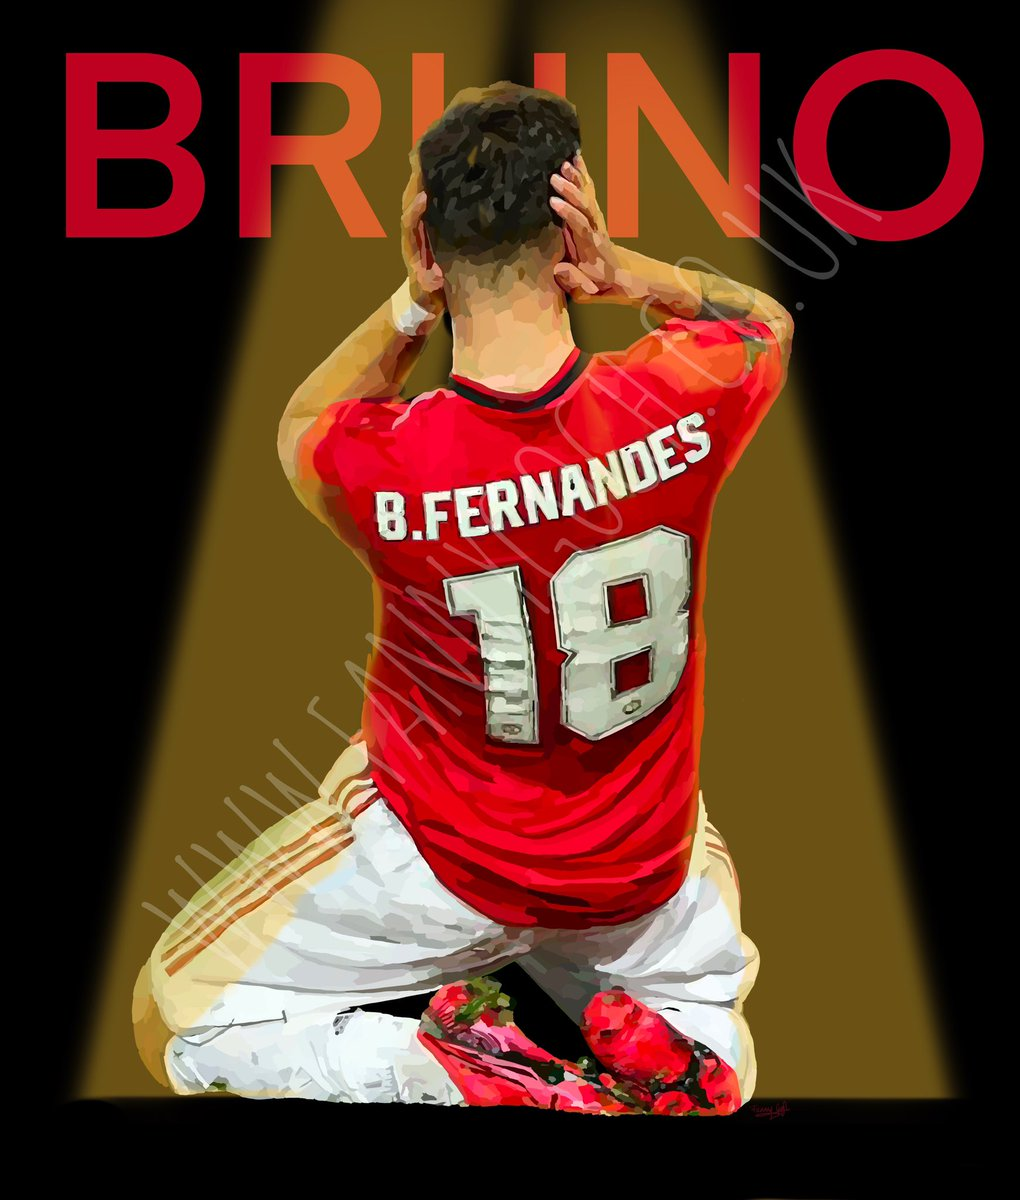 And heeeerrreees #brunofernandes get your print from the link above 🙏🏼✋🏻#ManchesterUnited #manu #ManUtd #MUFC_FAMILY #mufc